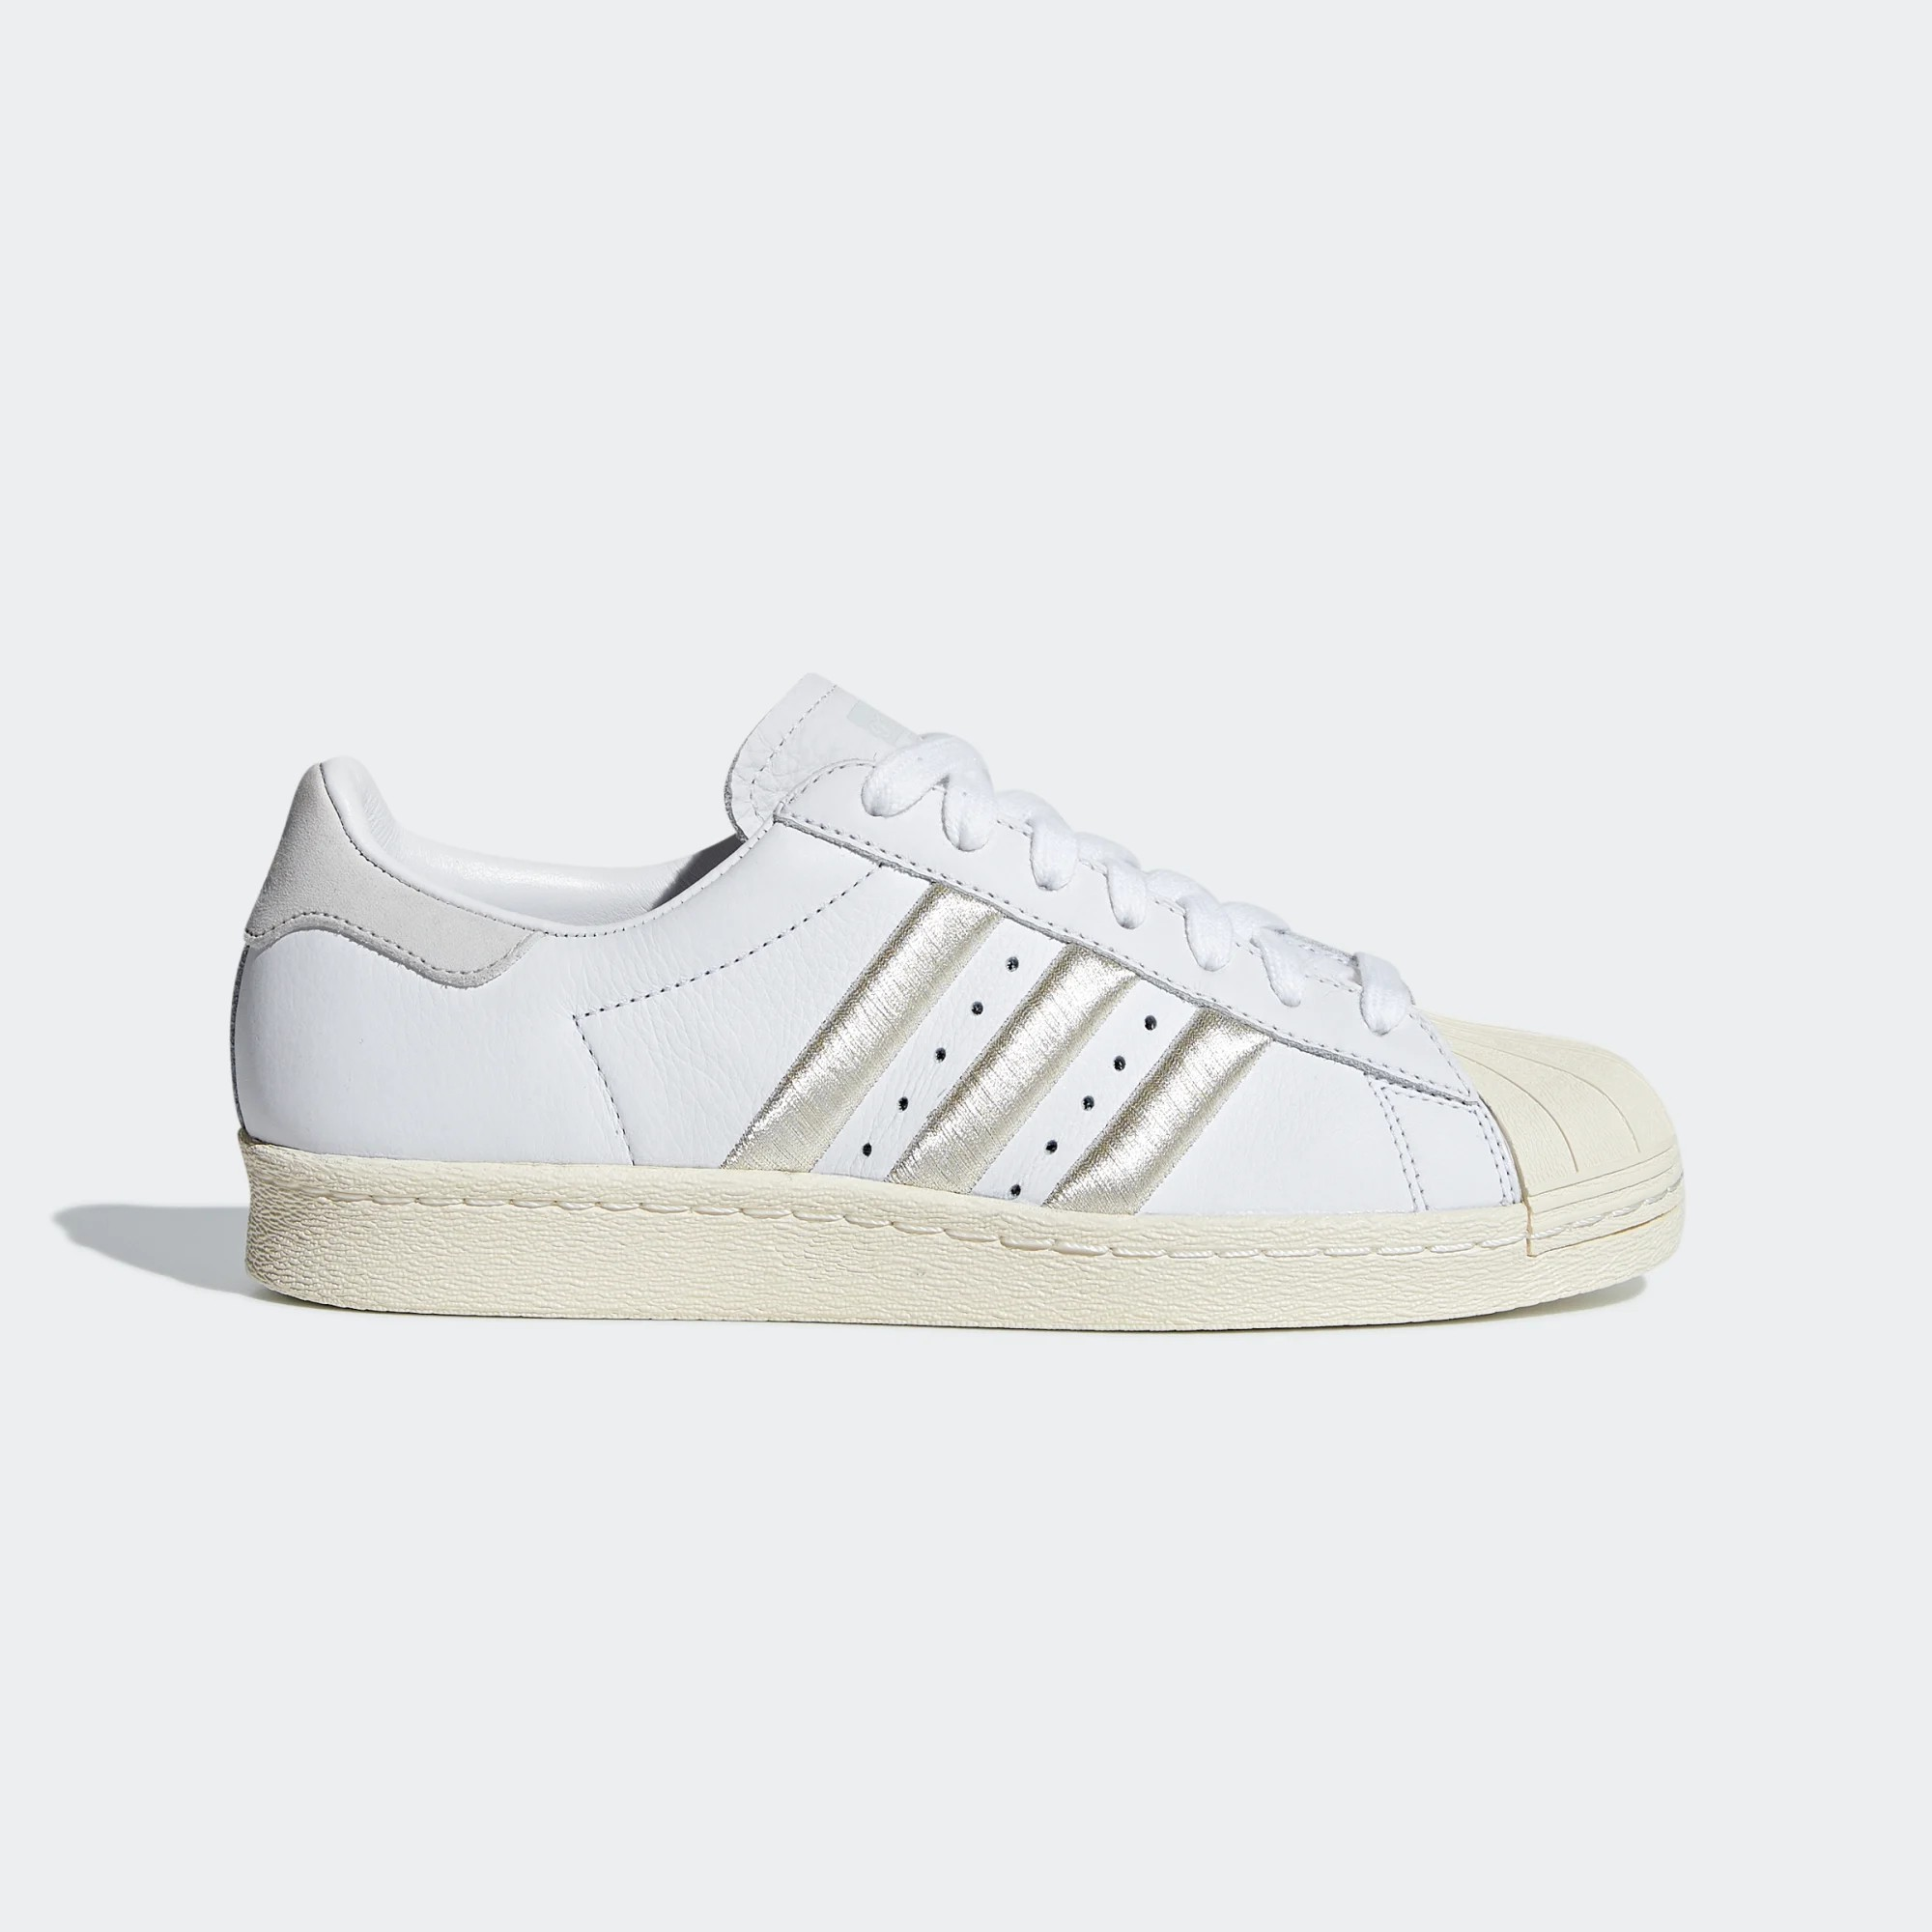 adidas Superstar 80s W White/Beige CG5997